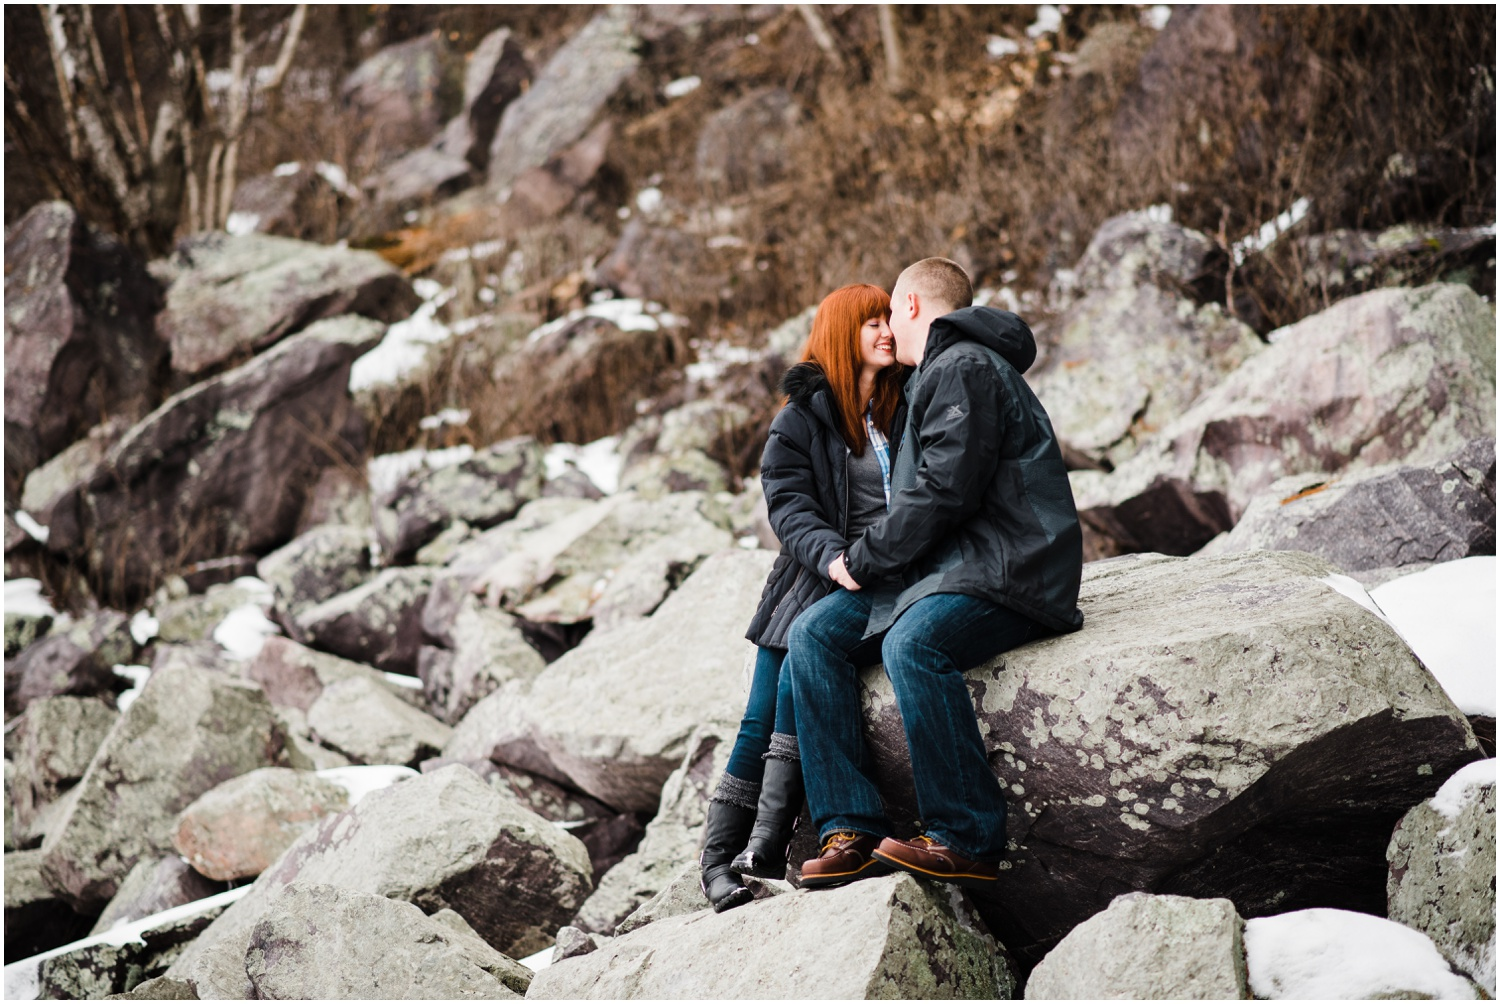 Devils-Lake-Baraboo-Wisconsin-Engagement-Photographer-Lindsey-And-Cody-Engaged-88.jpg